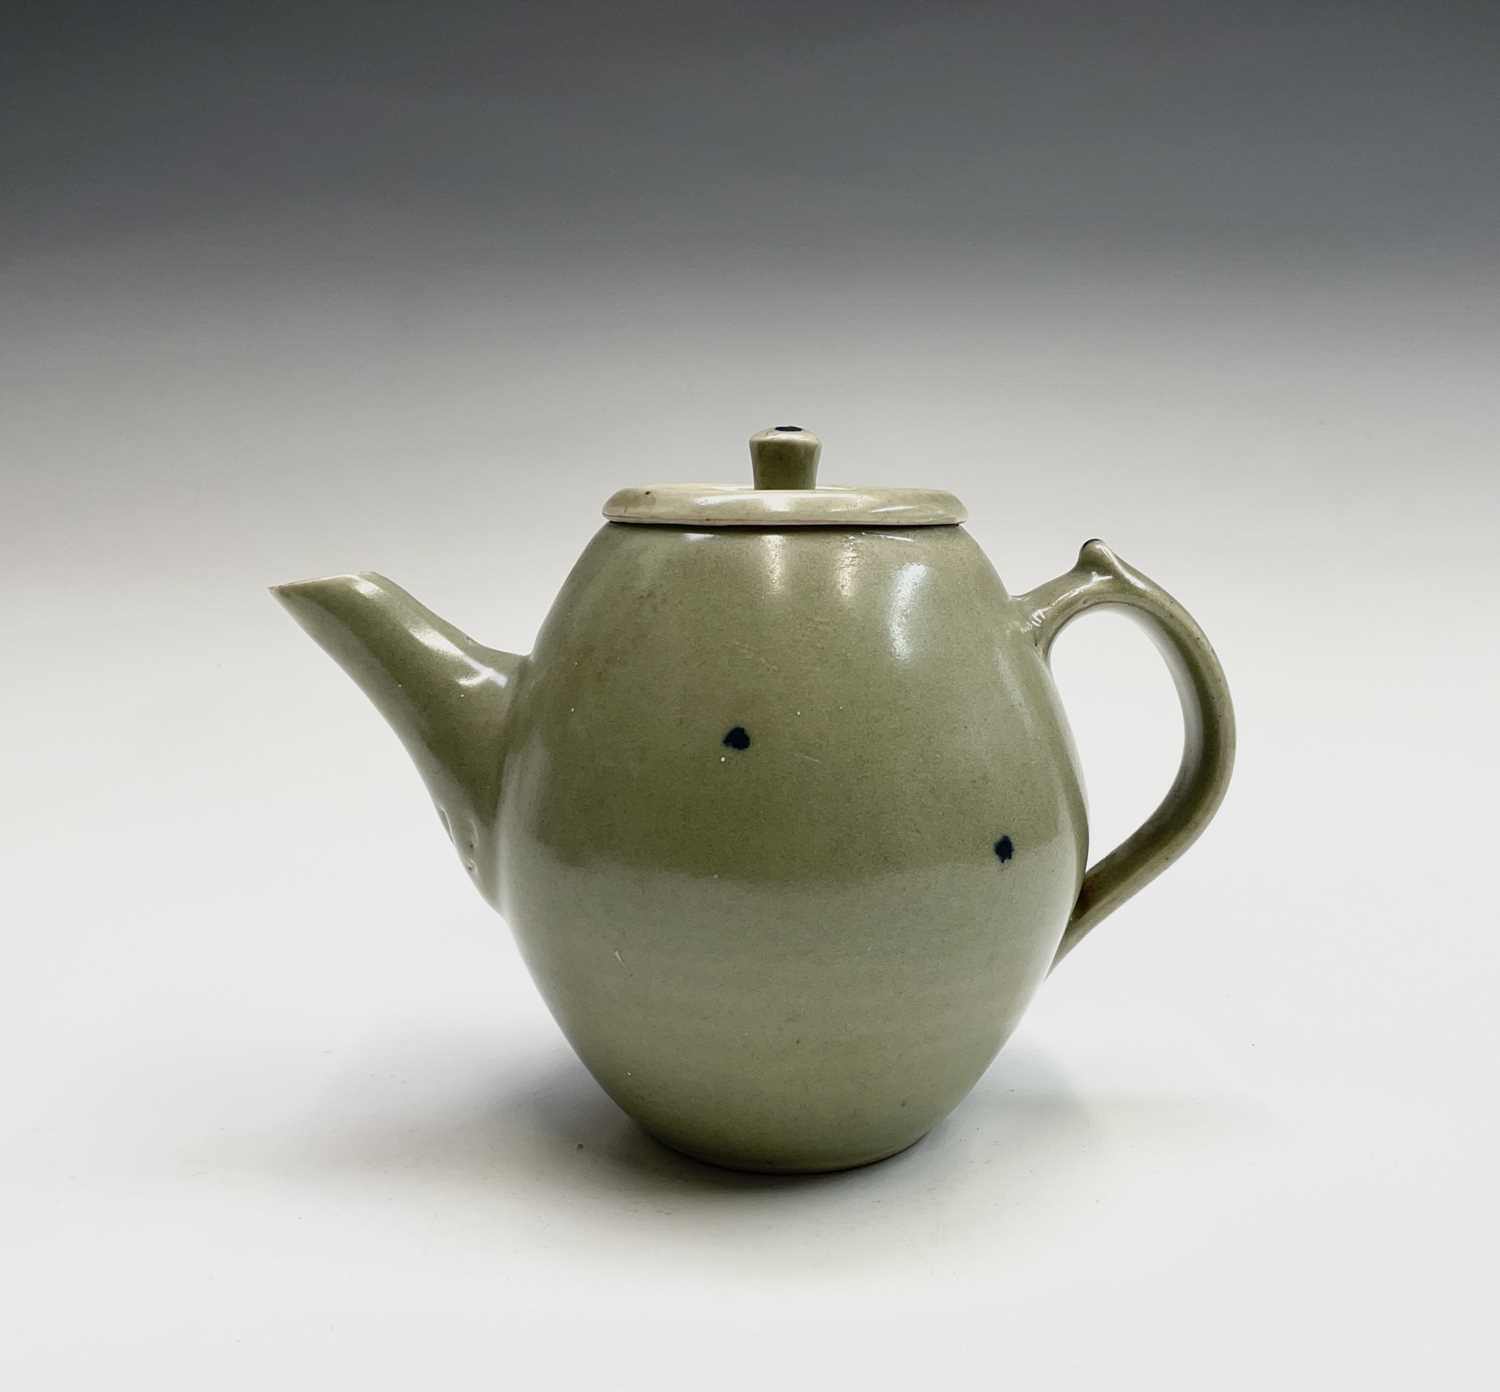 A Leach Pottery, St Ives, celadon glazed teapot, height 14cm, with impressed Leach seal and initials